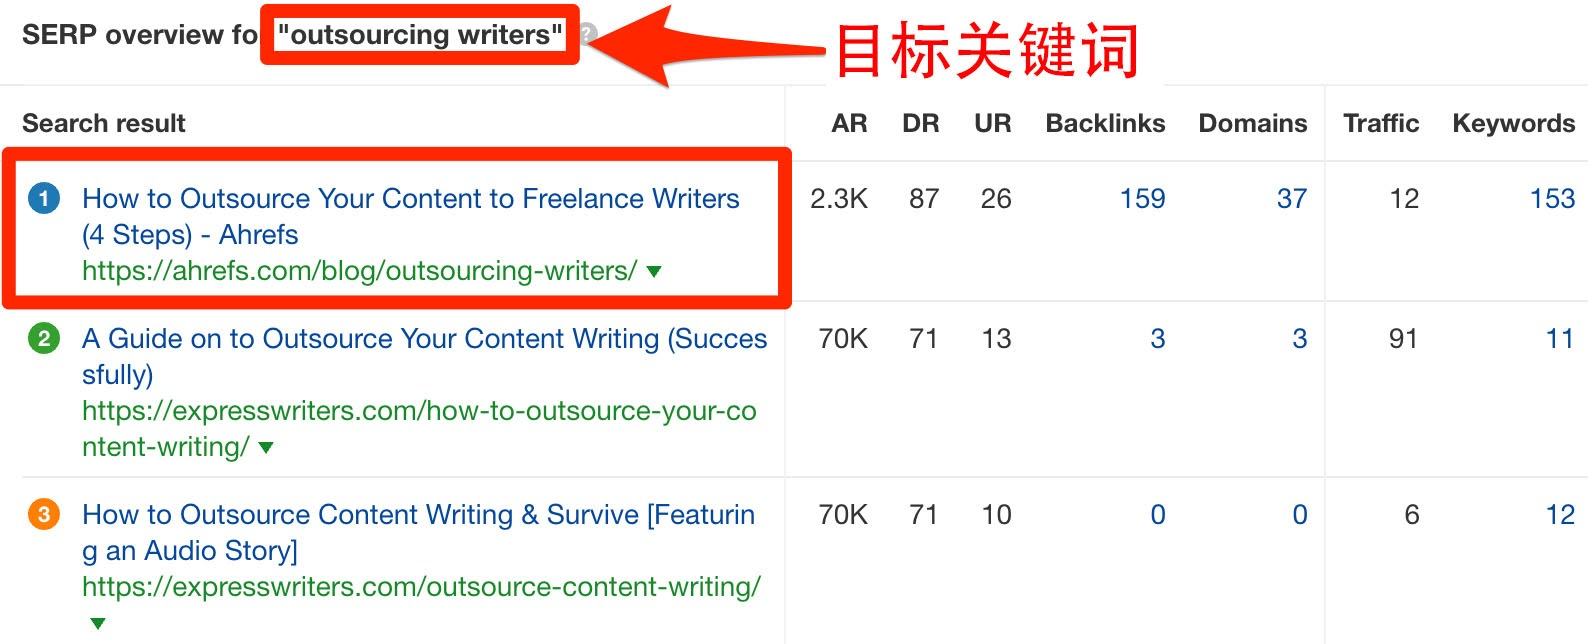 serp overview outsourcing writers